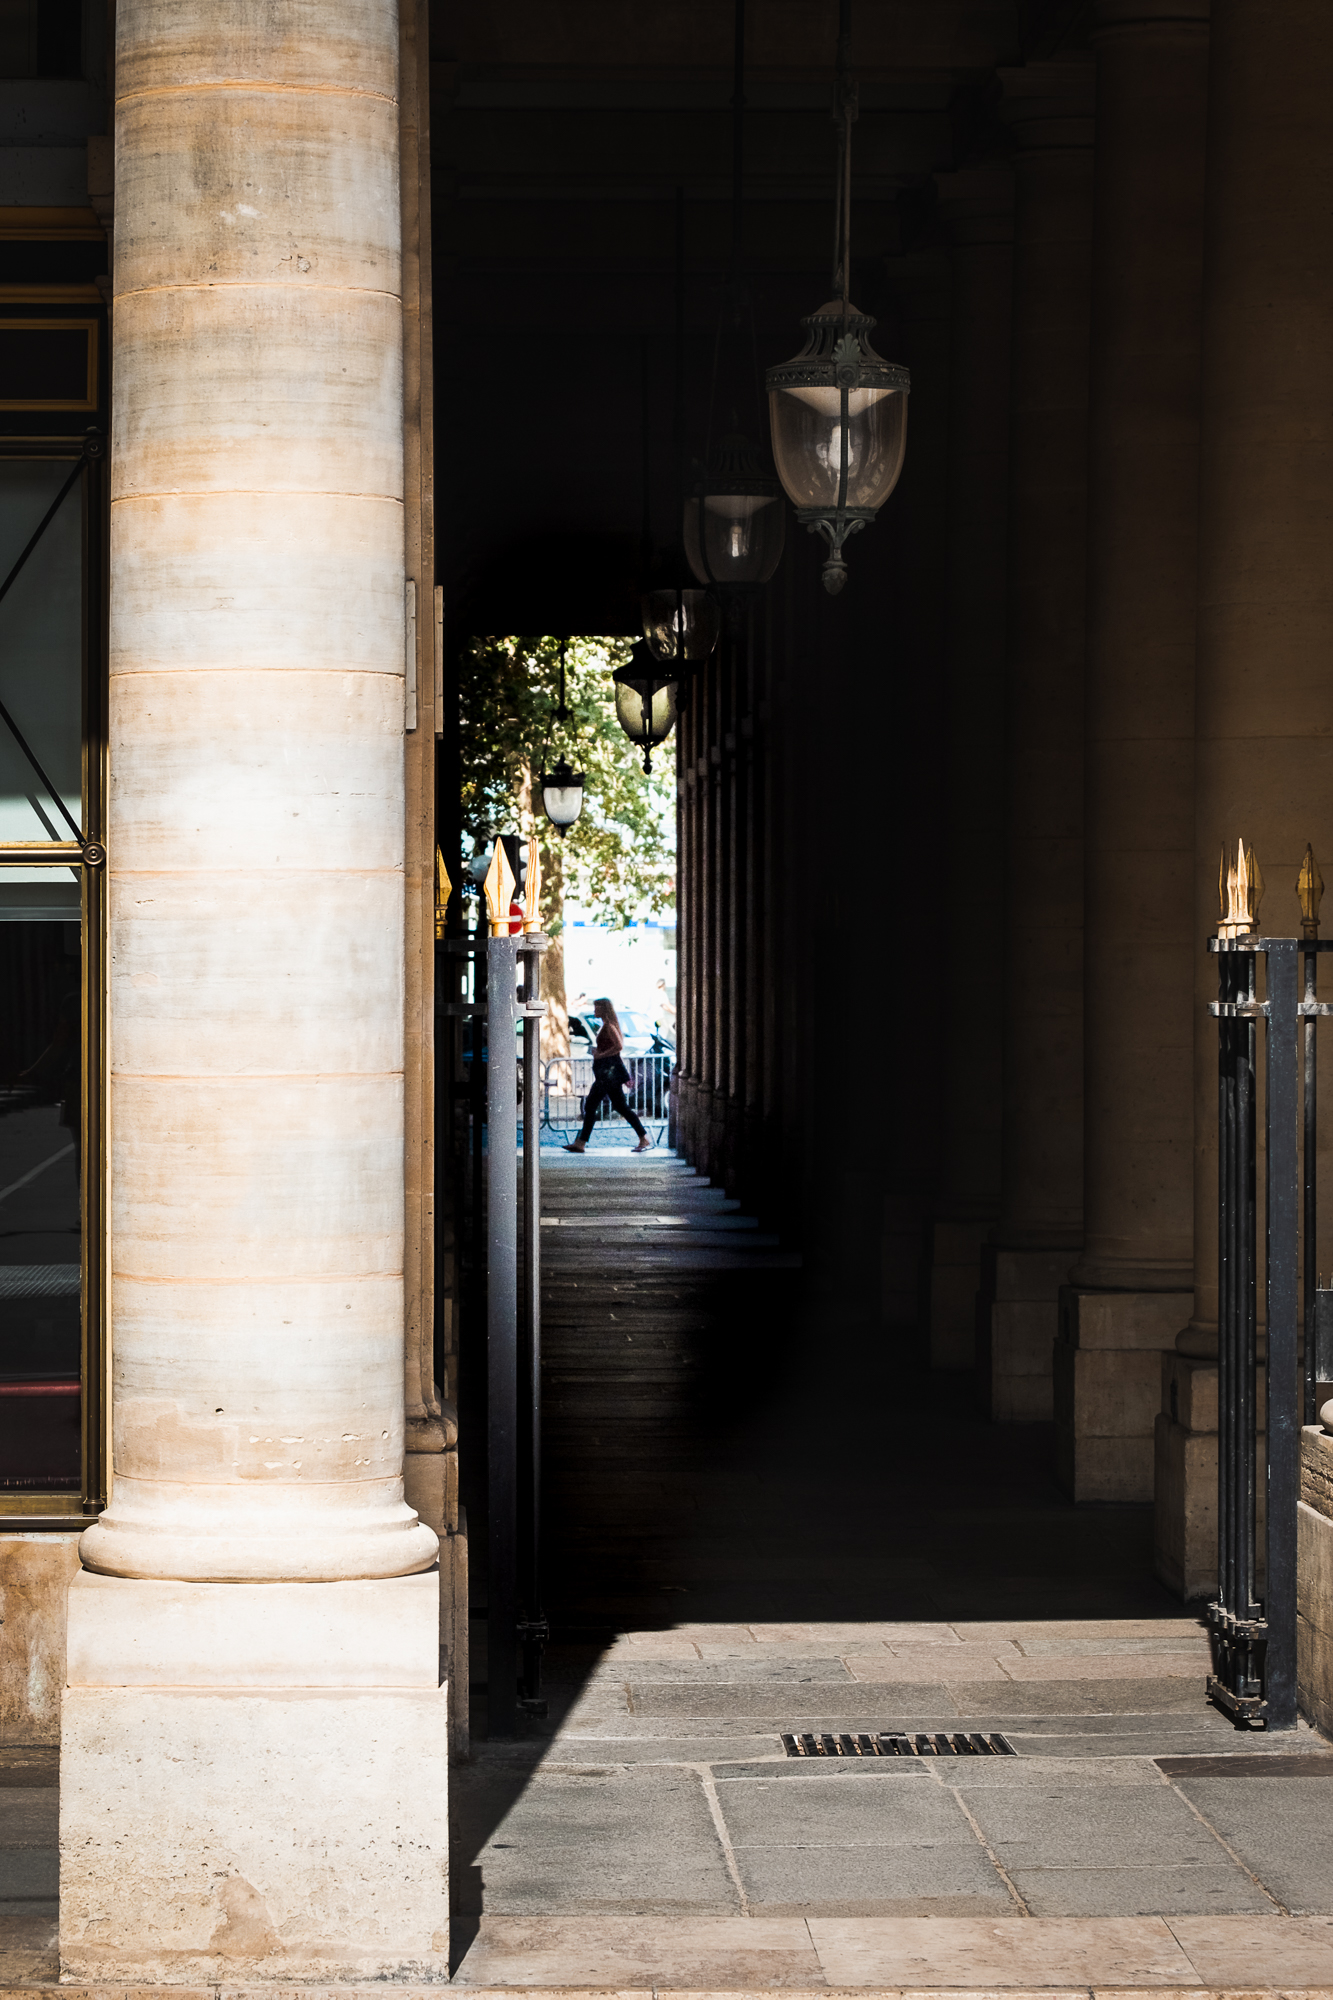 The Louvre Streets | Fujifilm XT2 | XF55-200mm | 55mm | 1/950 second | f/5.6 | ISO200